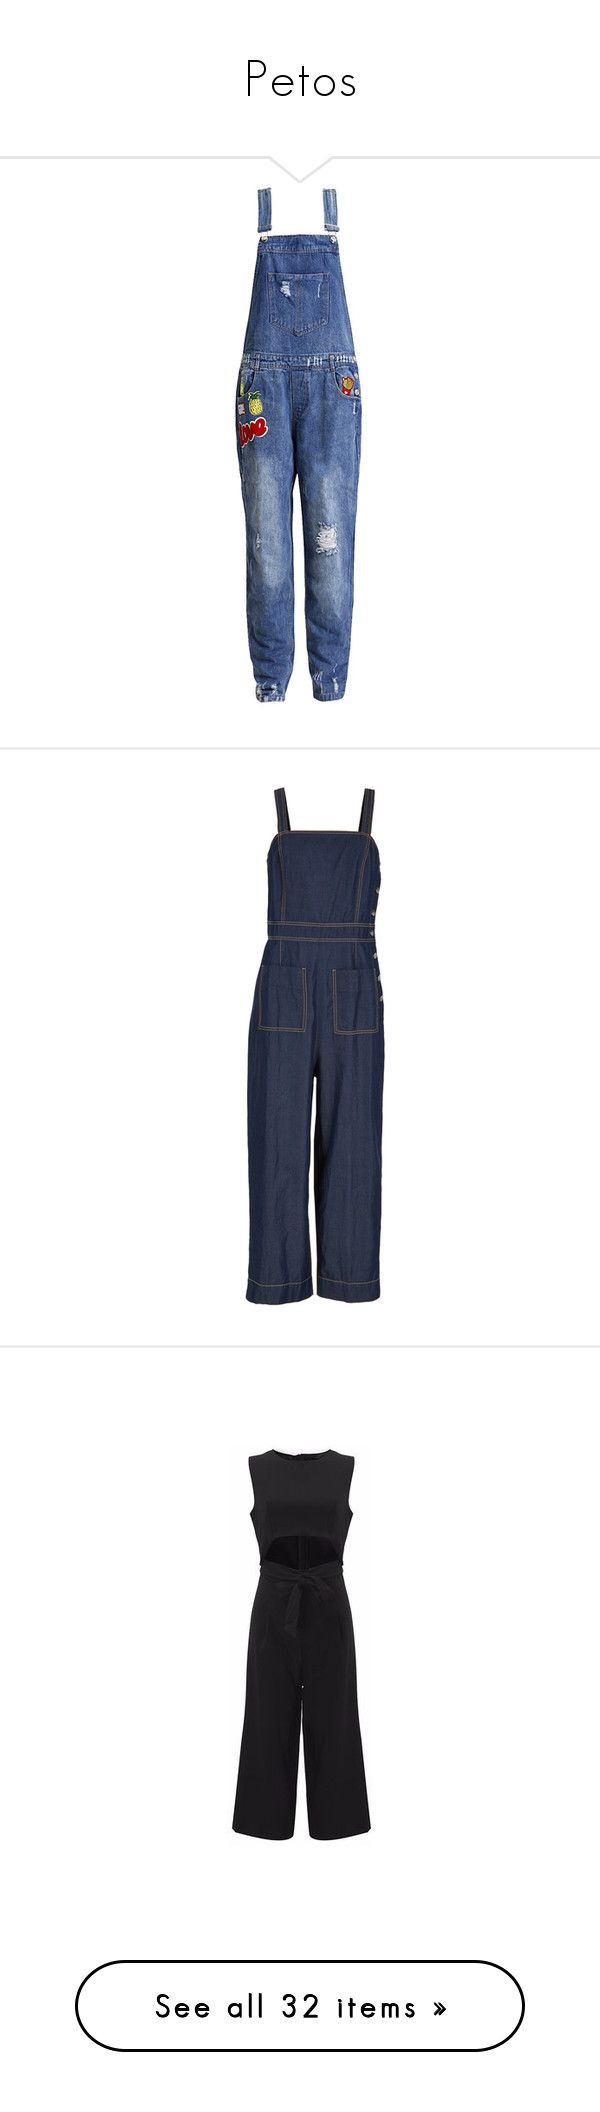 """Petos"" by yblacasa ❤ liked on Polyvore featuring jumpsuits, denim, denim overalls, denim jumpsuit, distressed overalls, bib overalls, overalls jumpsuit, steel denim, jump suit and tibi"